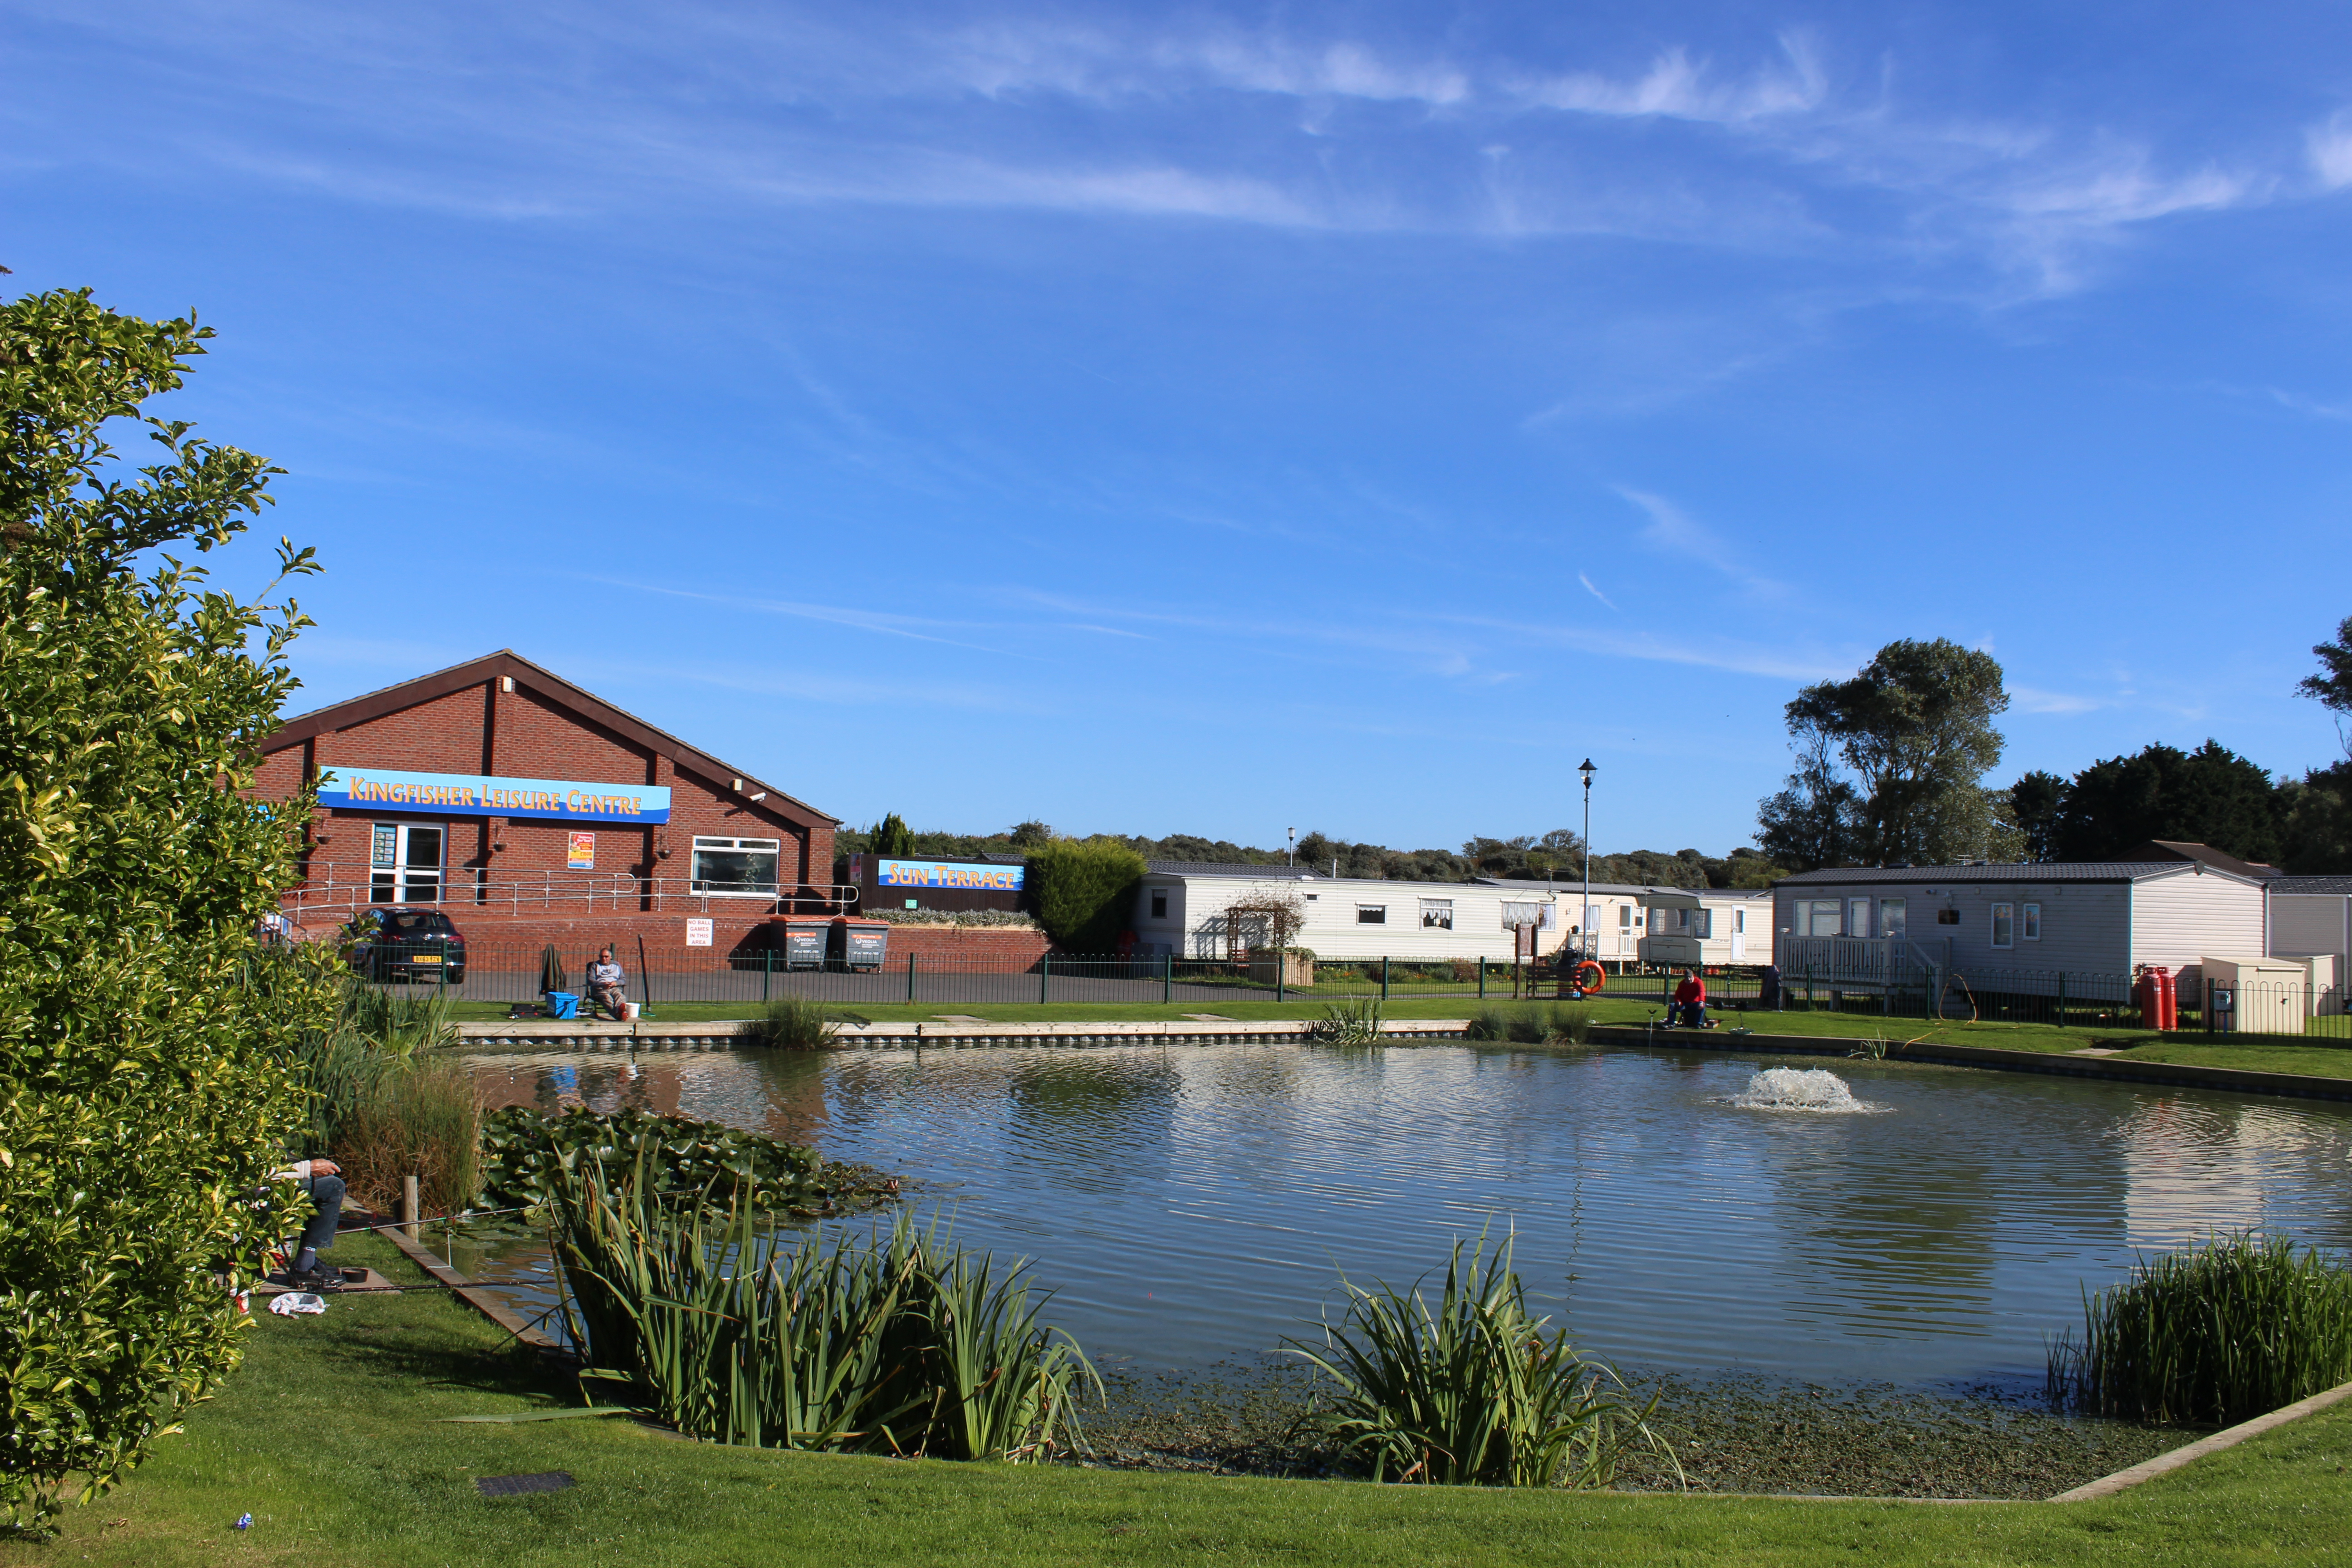 Kessingland Beach Holiday Park - Lowerstoft, Suffolk NR33 7RW - 03301 234956 | ShowMeLocal.com